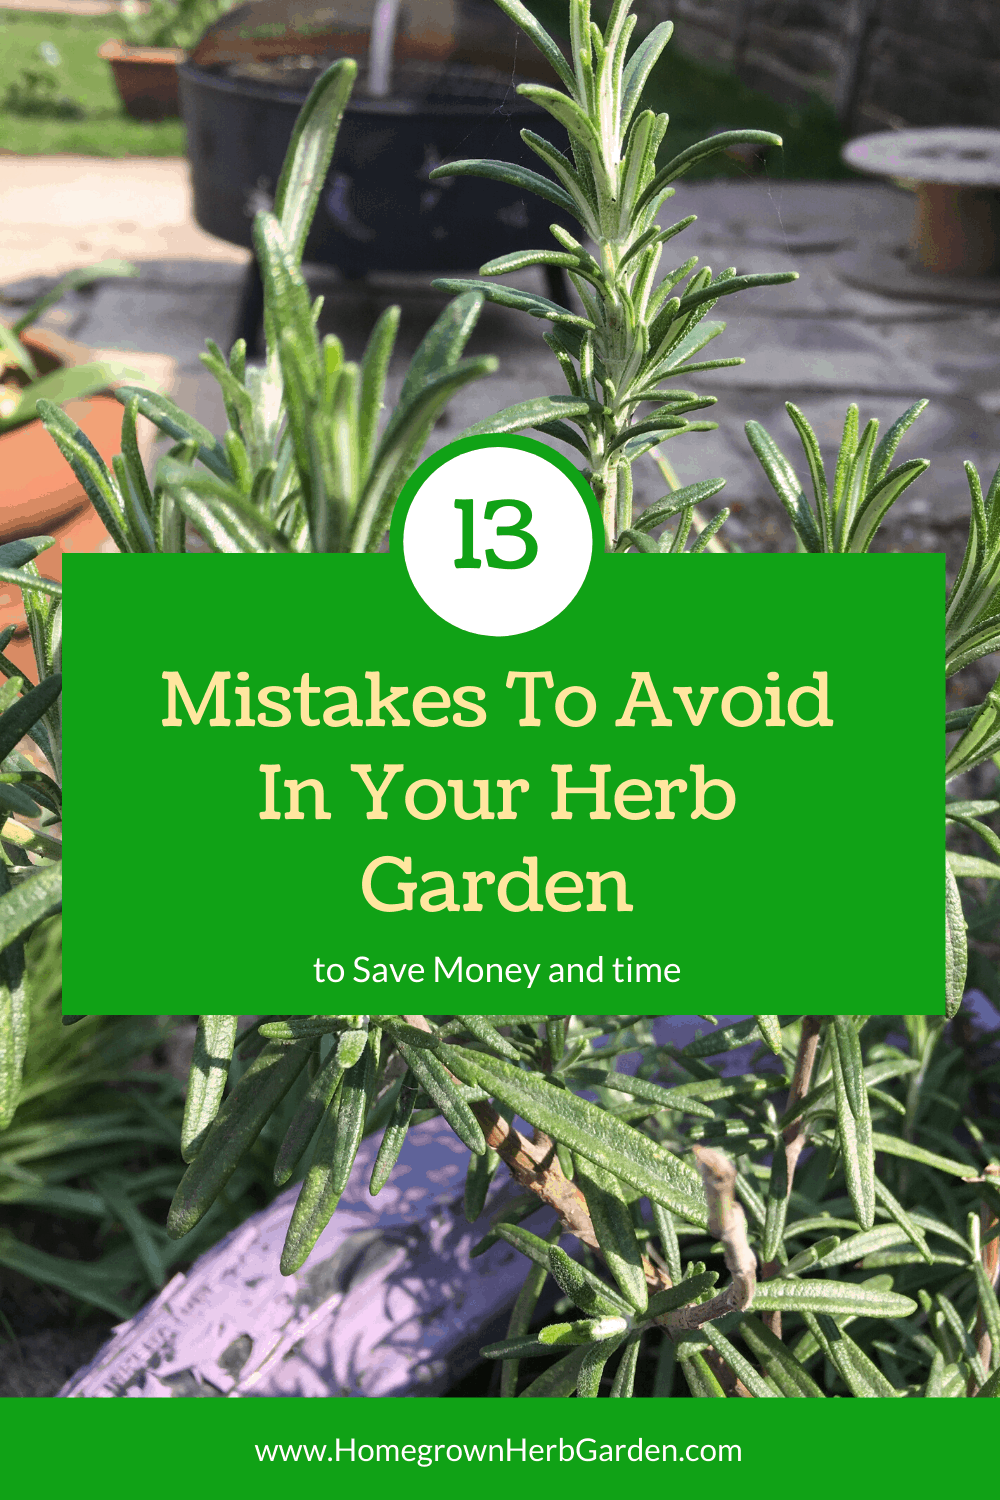 13 mistakes to avoid in your herb garden